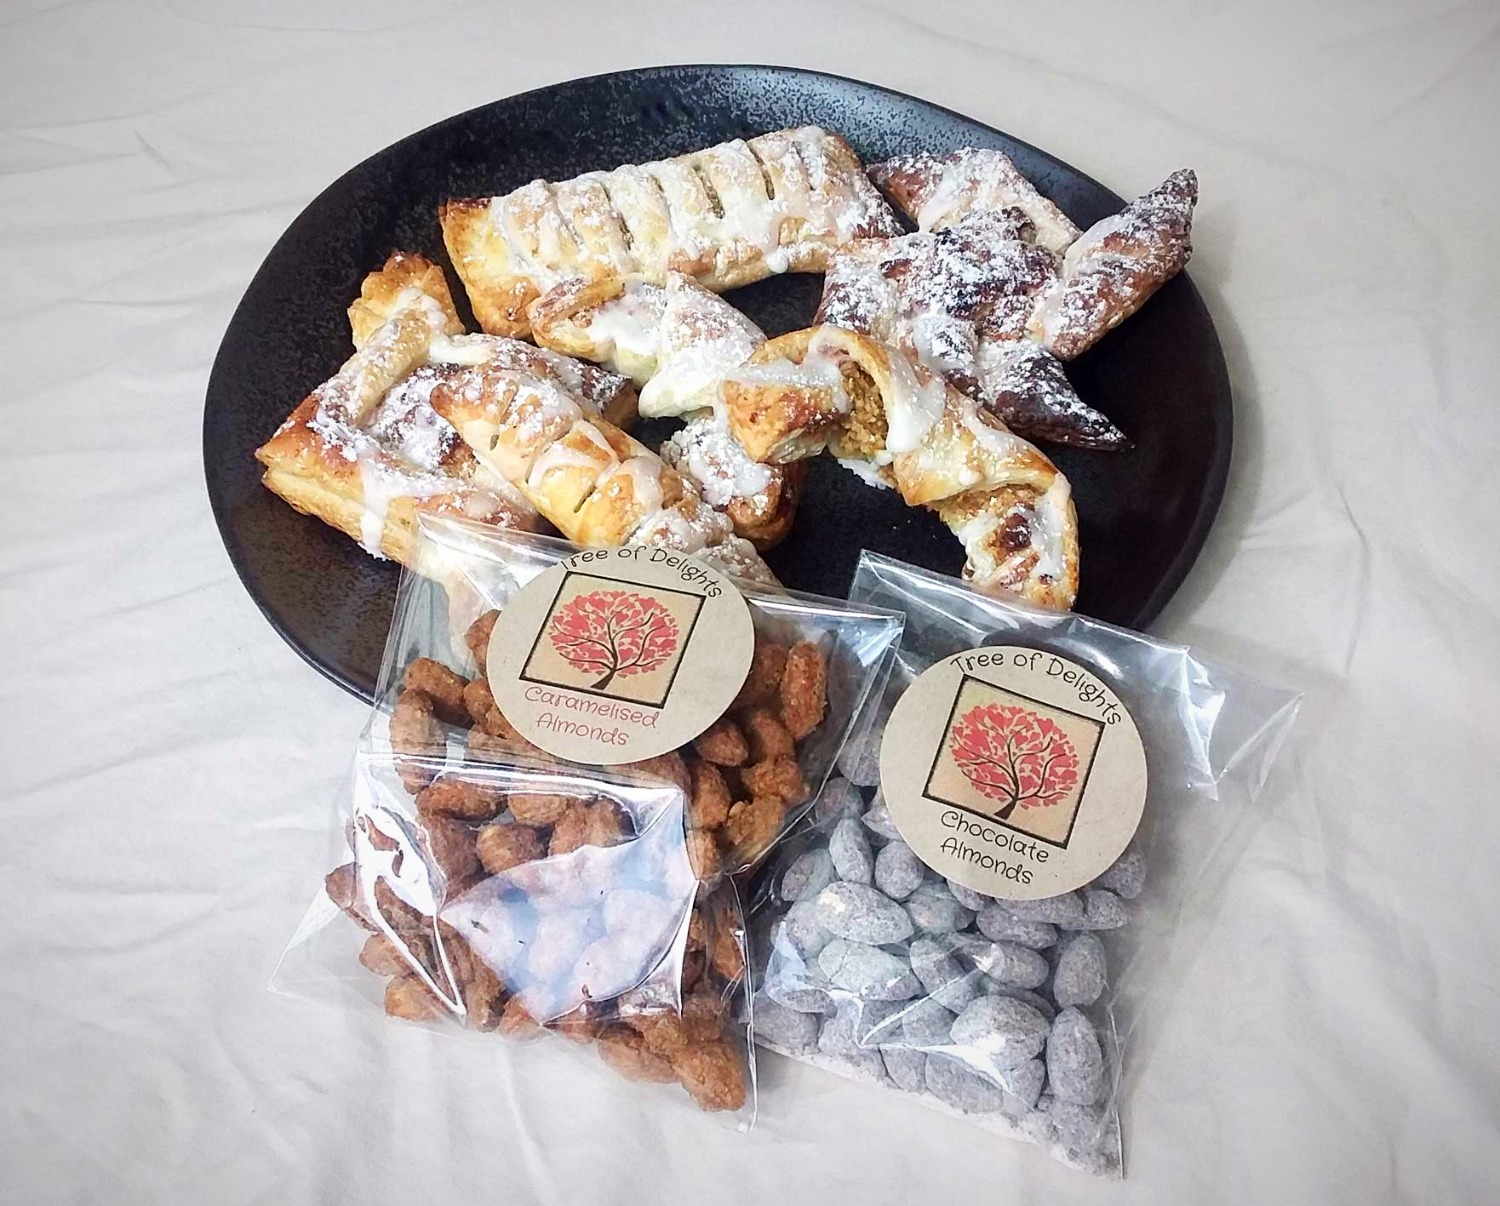 Pastries and almonds